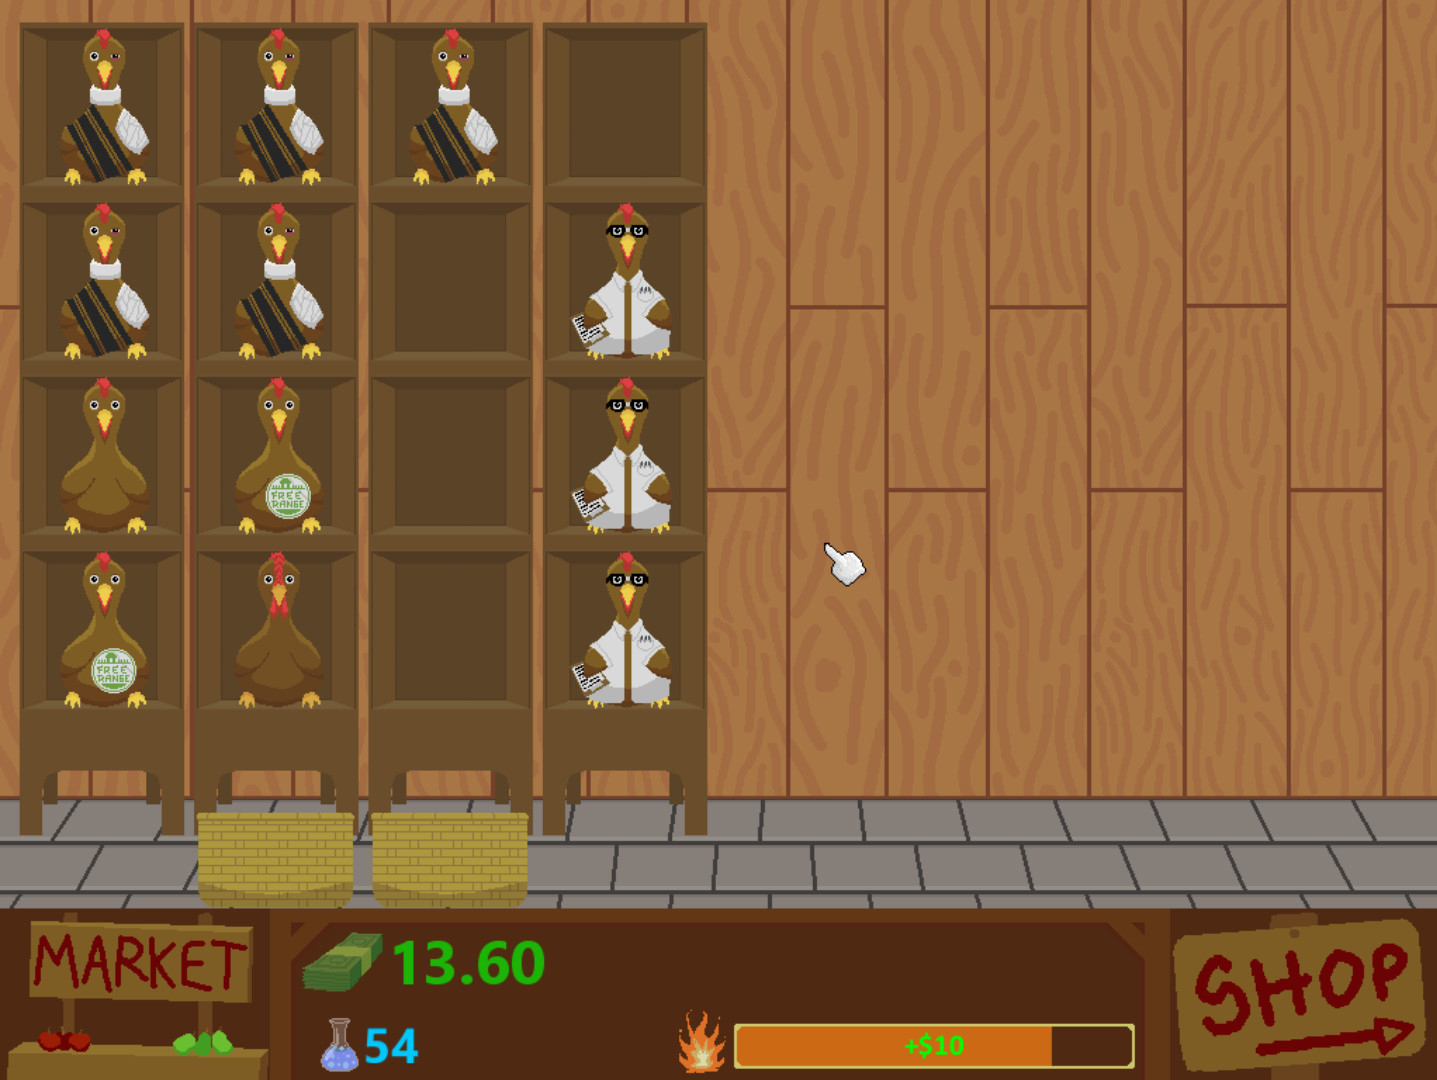 Screenshot: Inside of a wooden barn, with stacked shelves filled with various themed chickens, including scientist chickens, free range chickens, tire-marked chickens. Icons at the bottom show a Market sign, Shop sign, money, and other stats.